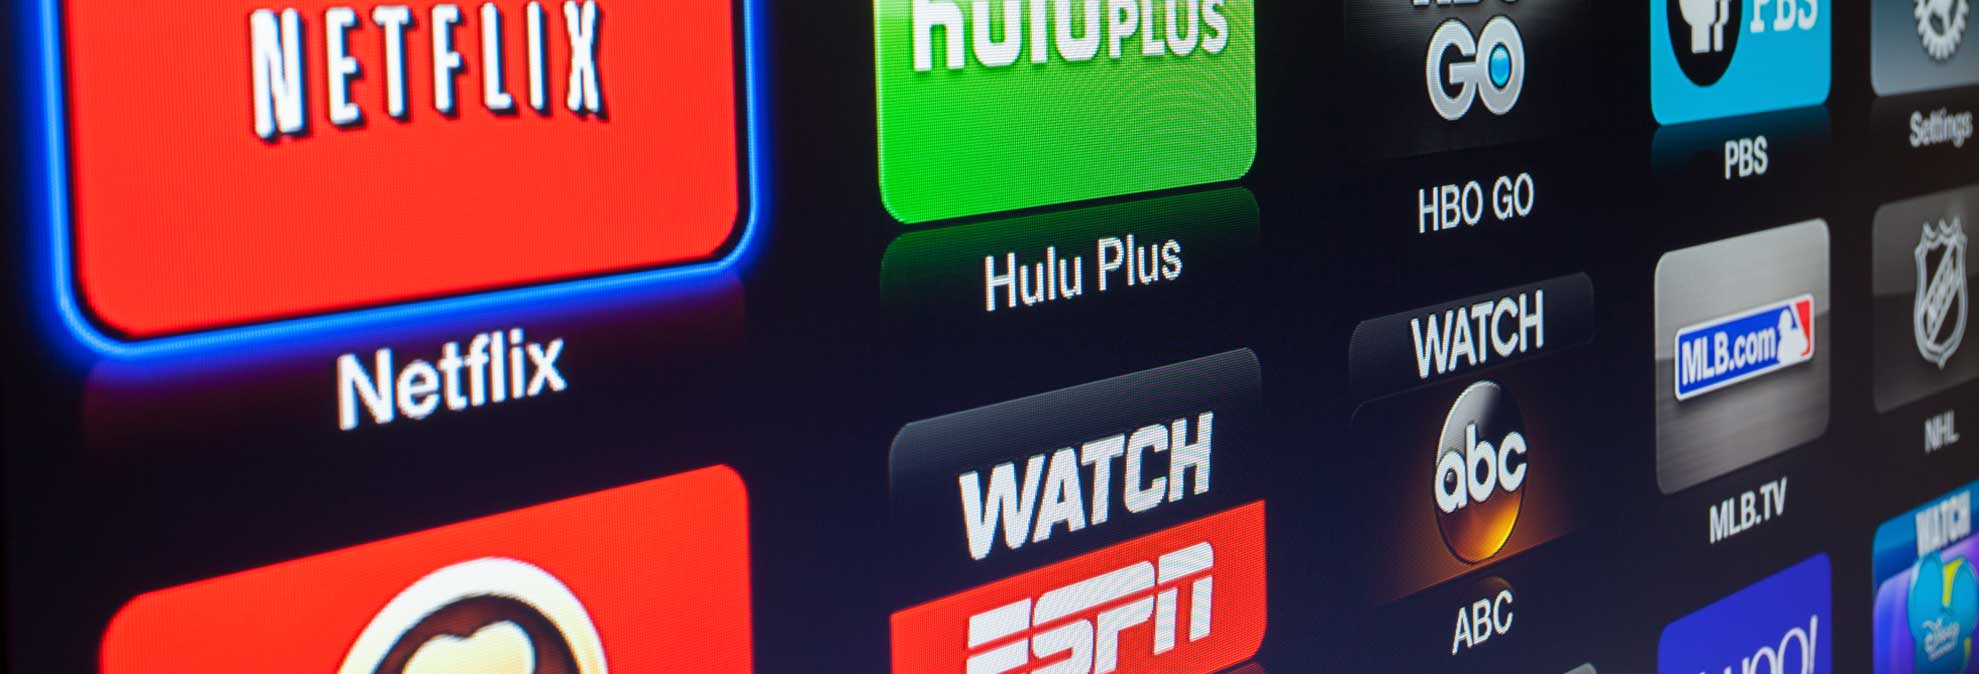 Best Streaming Media Devices Buying Guide - Consumer Reports